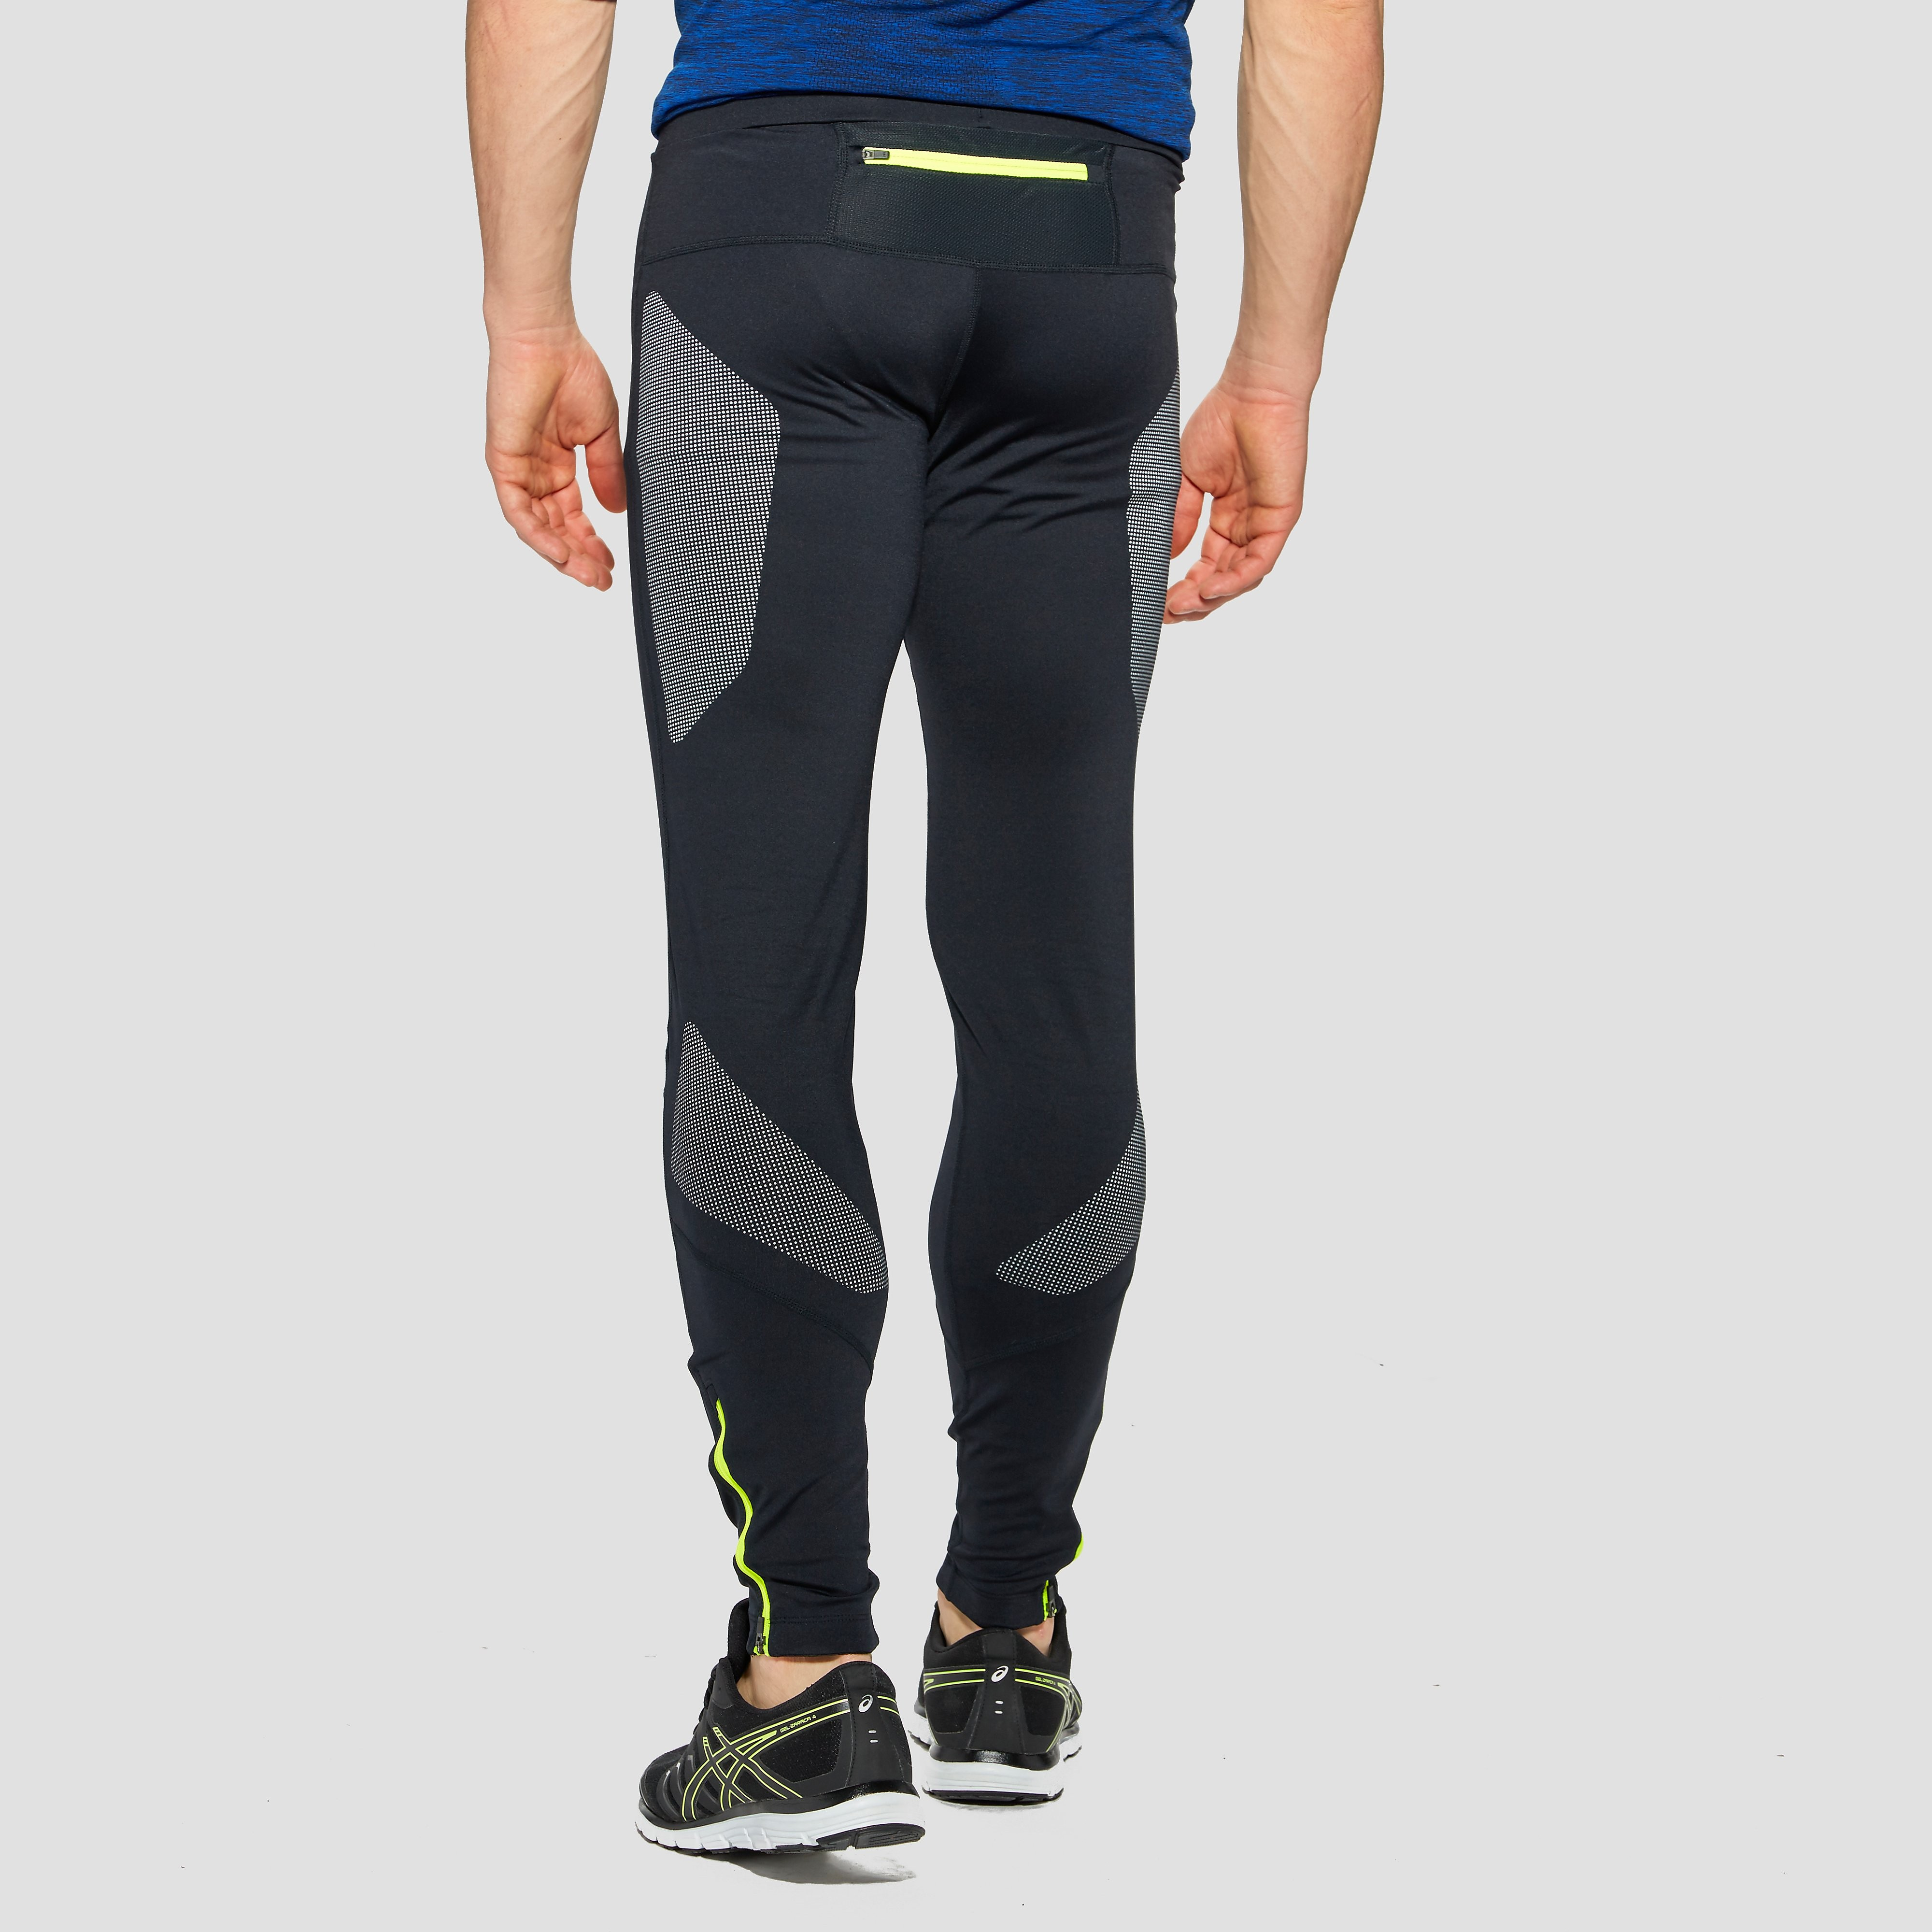 Ronhill Vizion Radiance Men's Running Tights